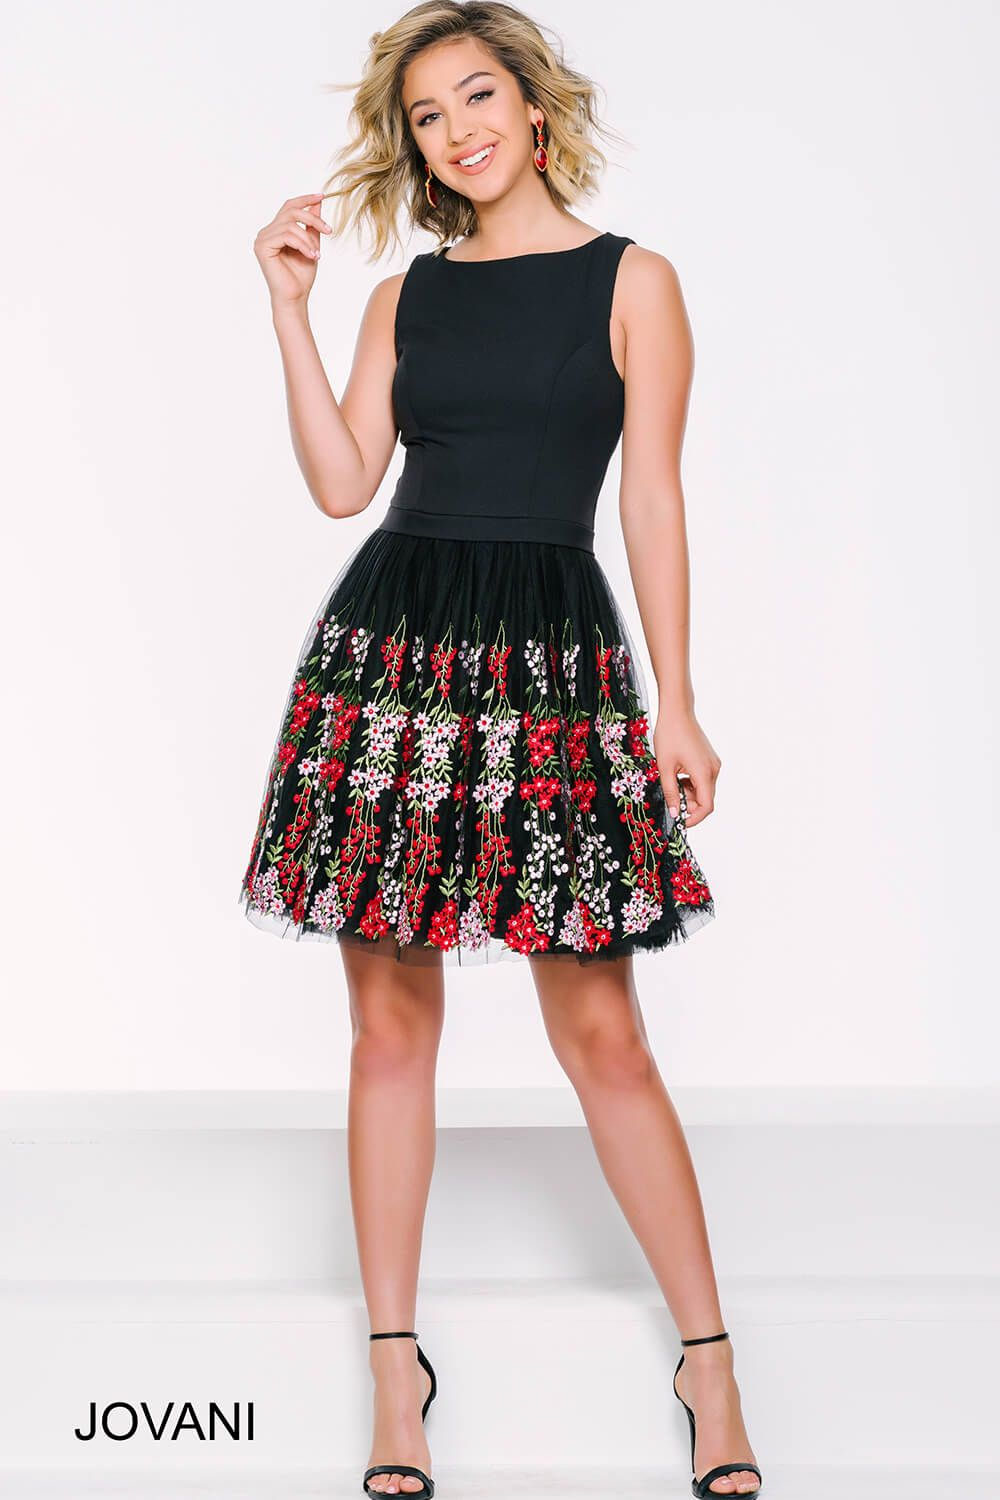 This jovani dress is the perfect take on the classic lbd